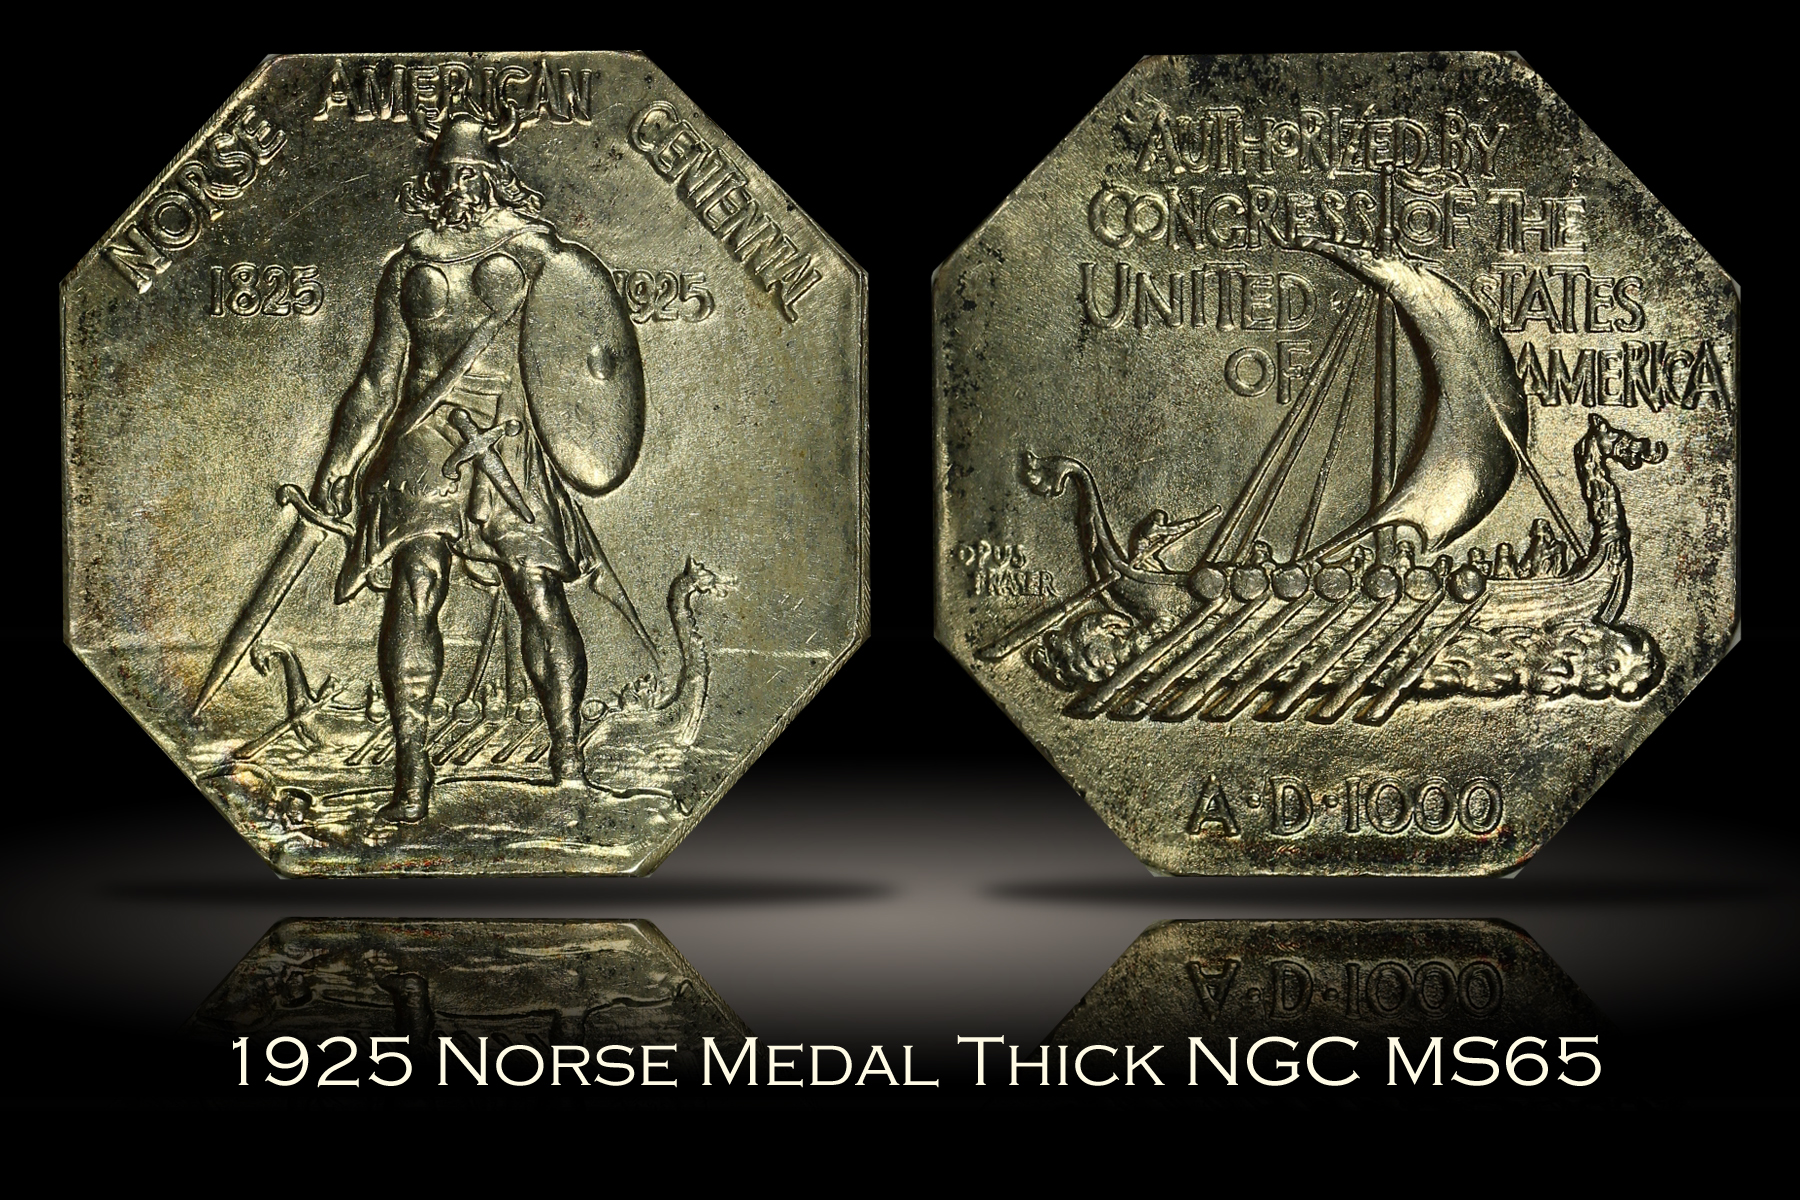 1925 Norse Medal Thick NGC MS65